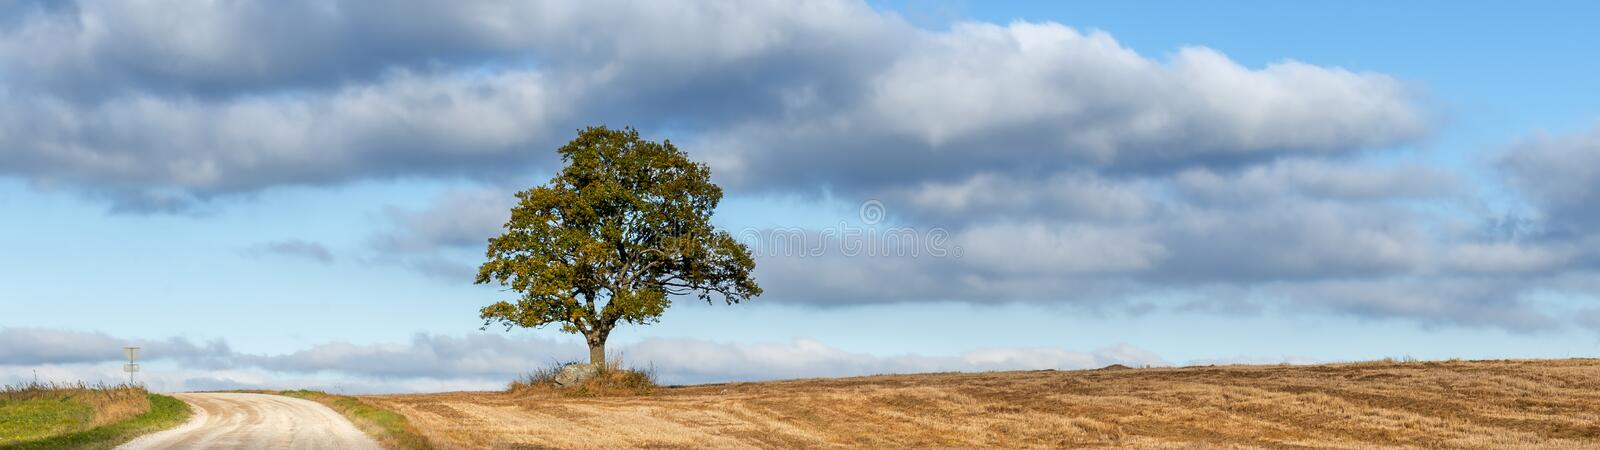 Lonely oak tree in autumn royalty free stock photography